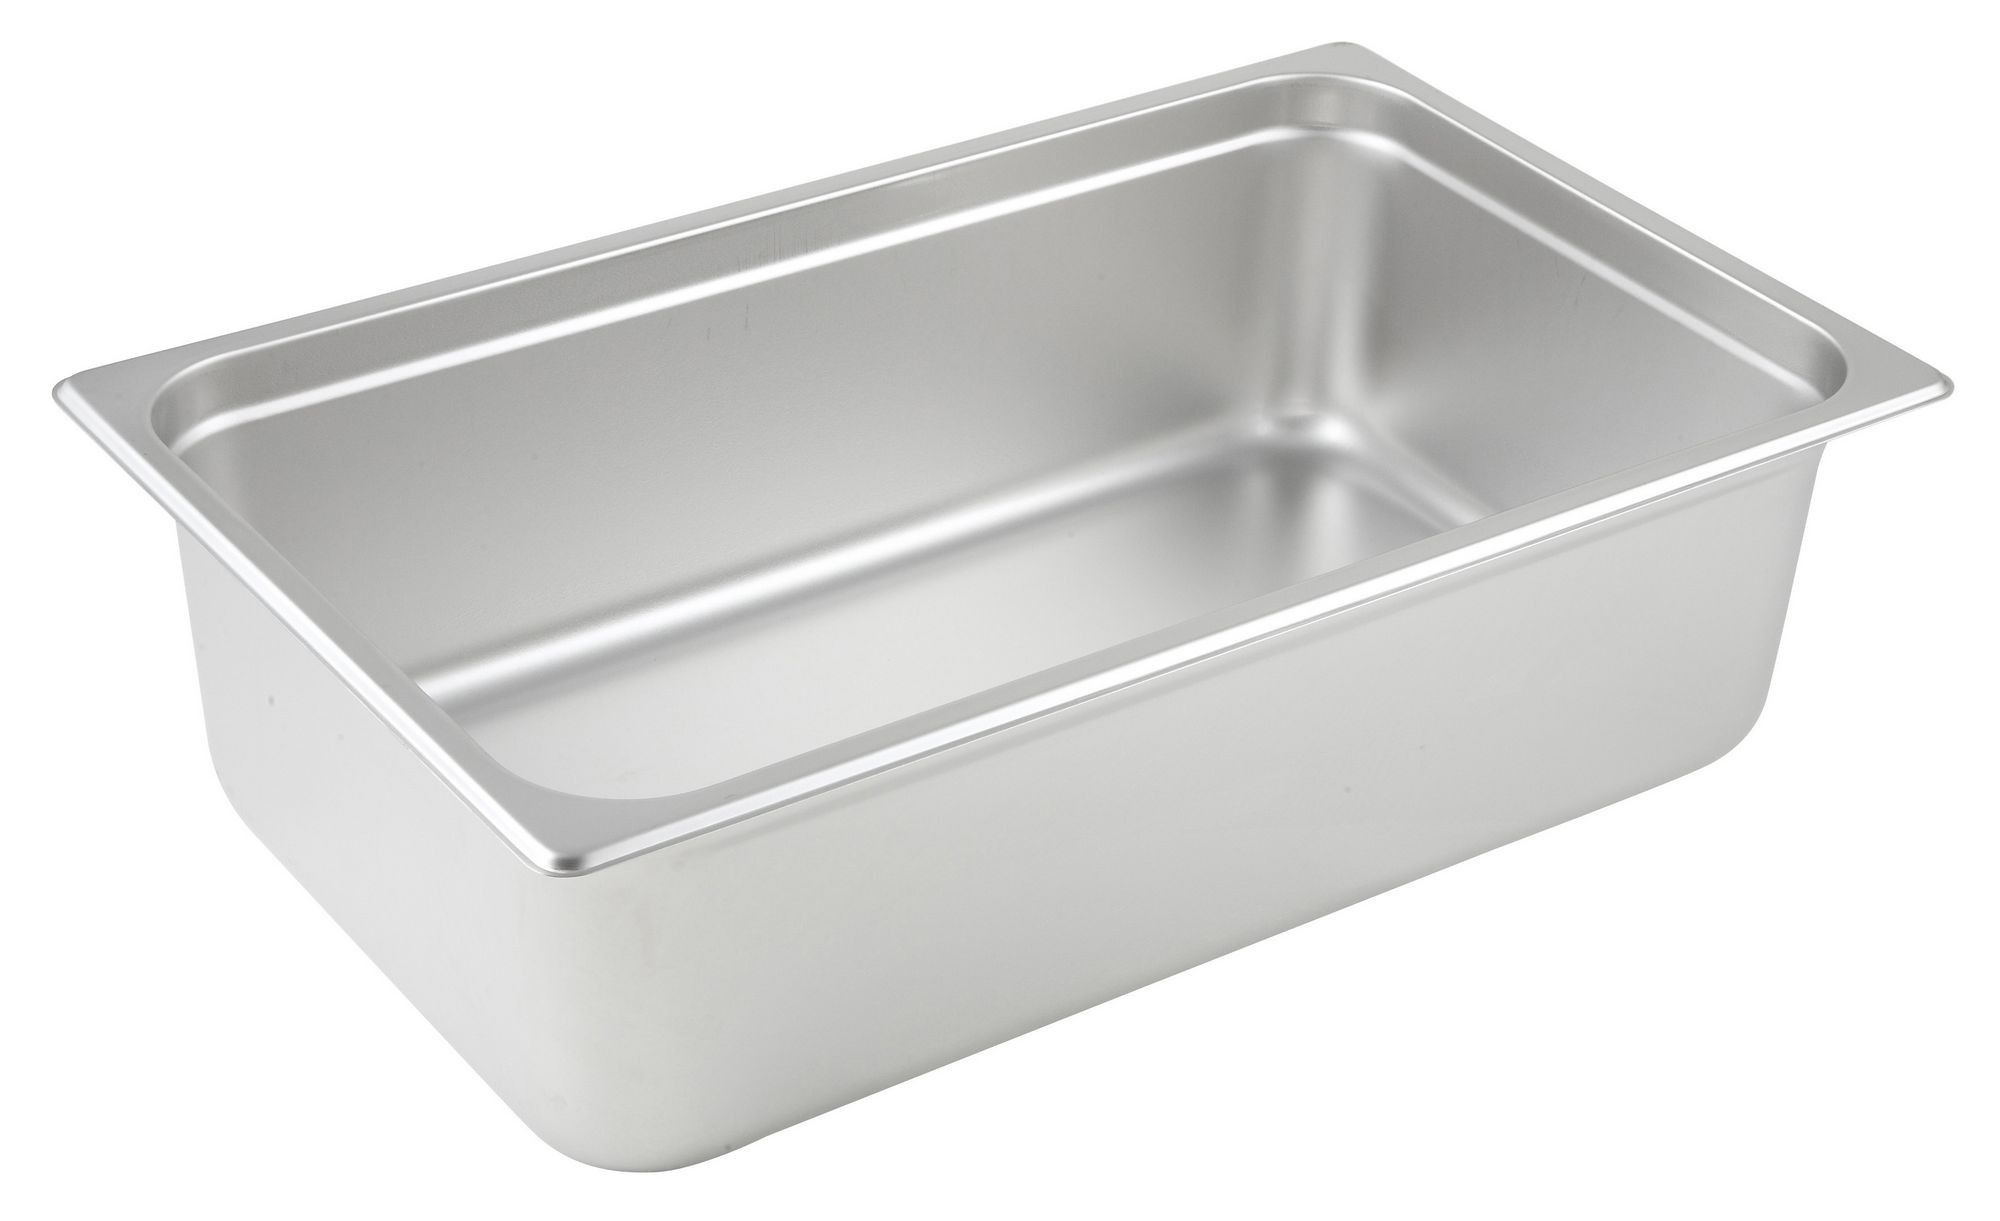 "Winco Spjm-106 Full Size Anti-Jam 24 Gauge Steam Table Pan 6"" Deep"